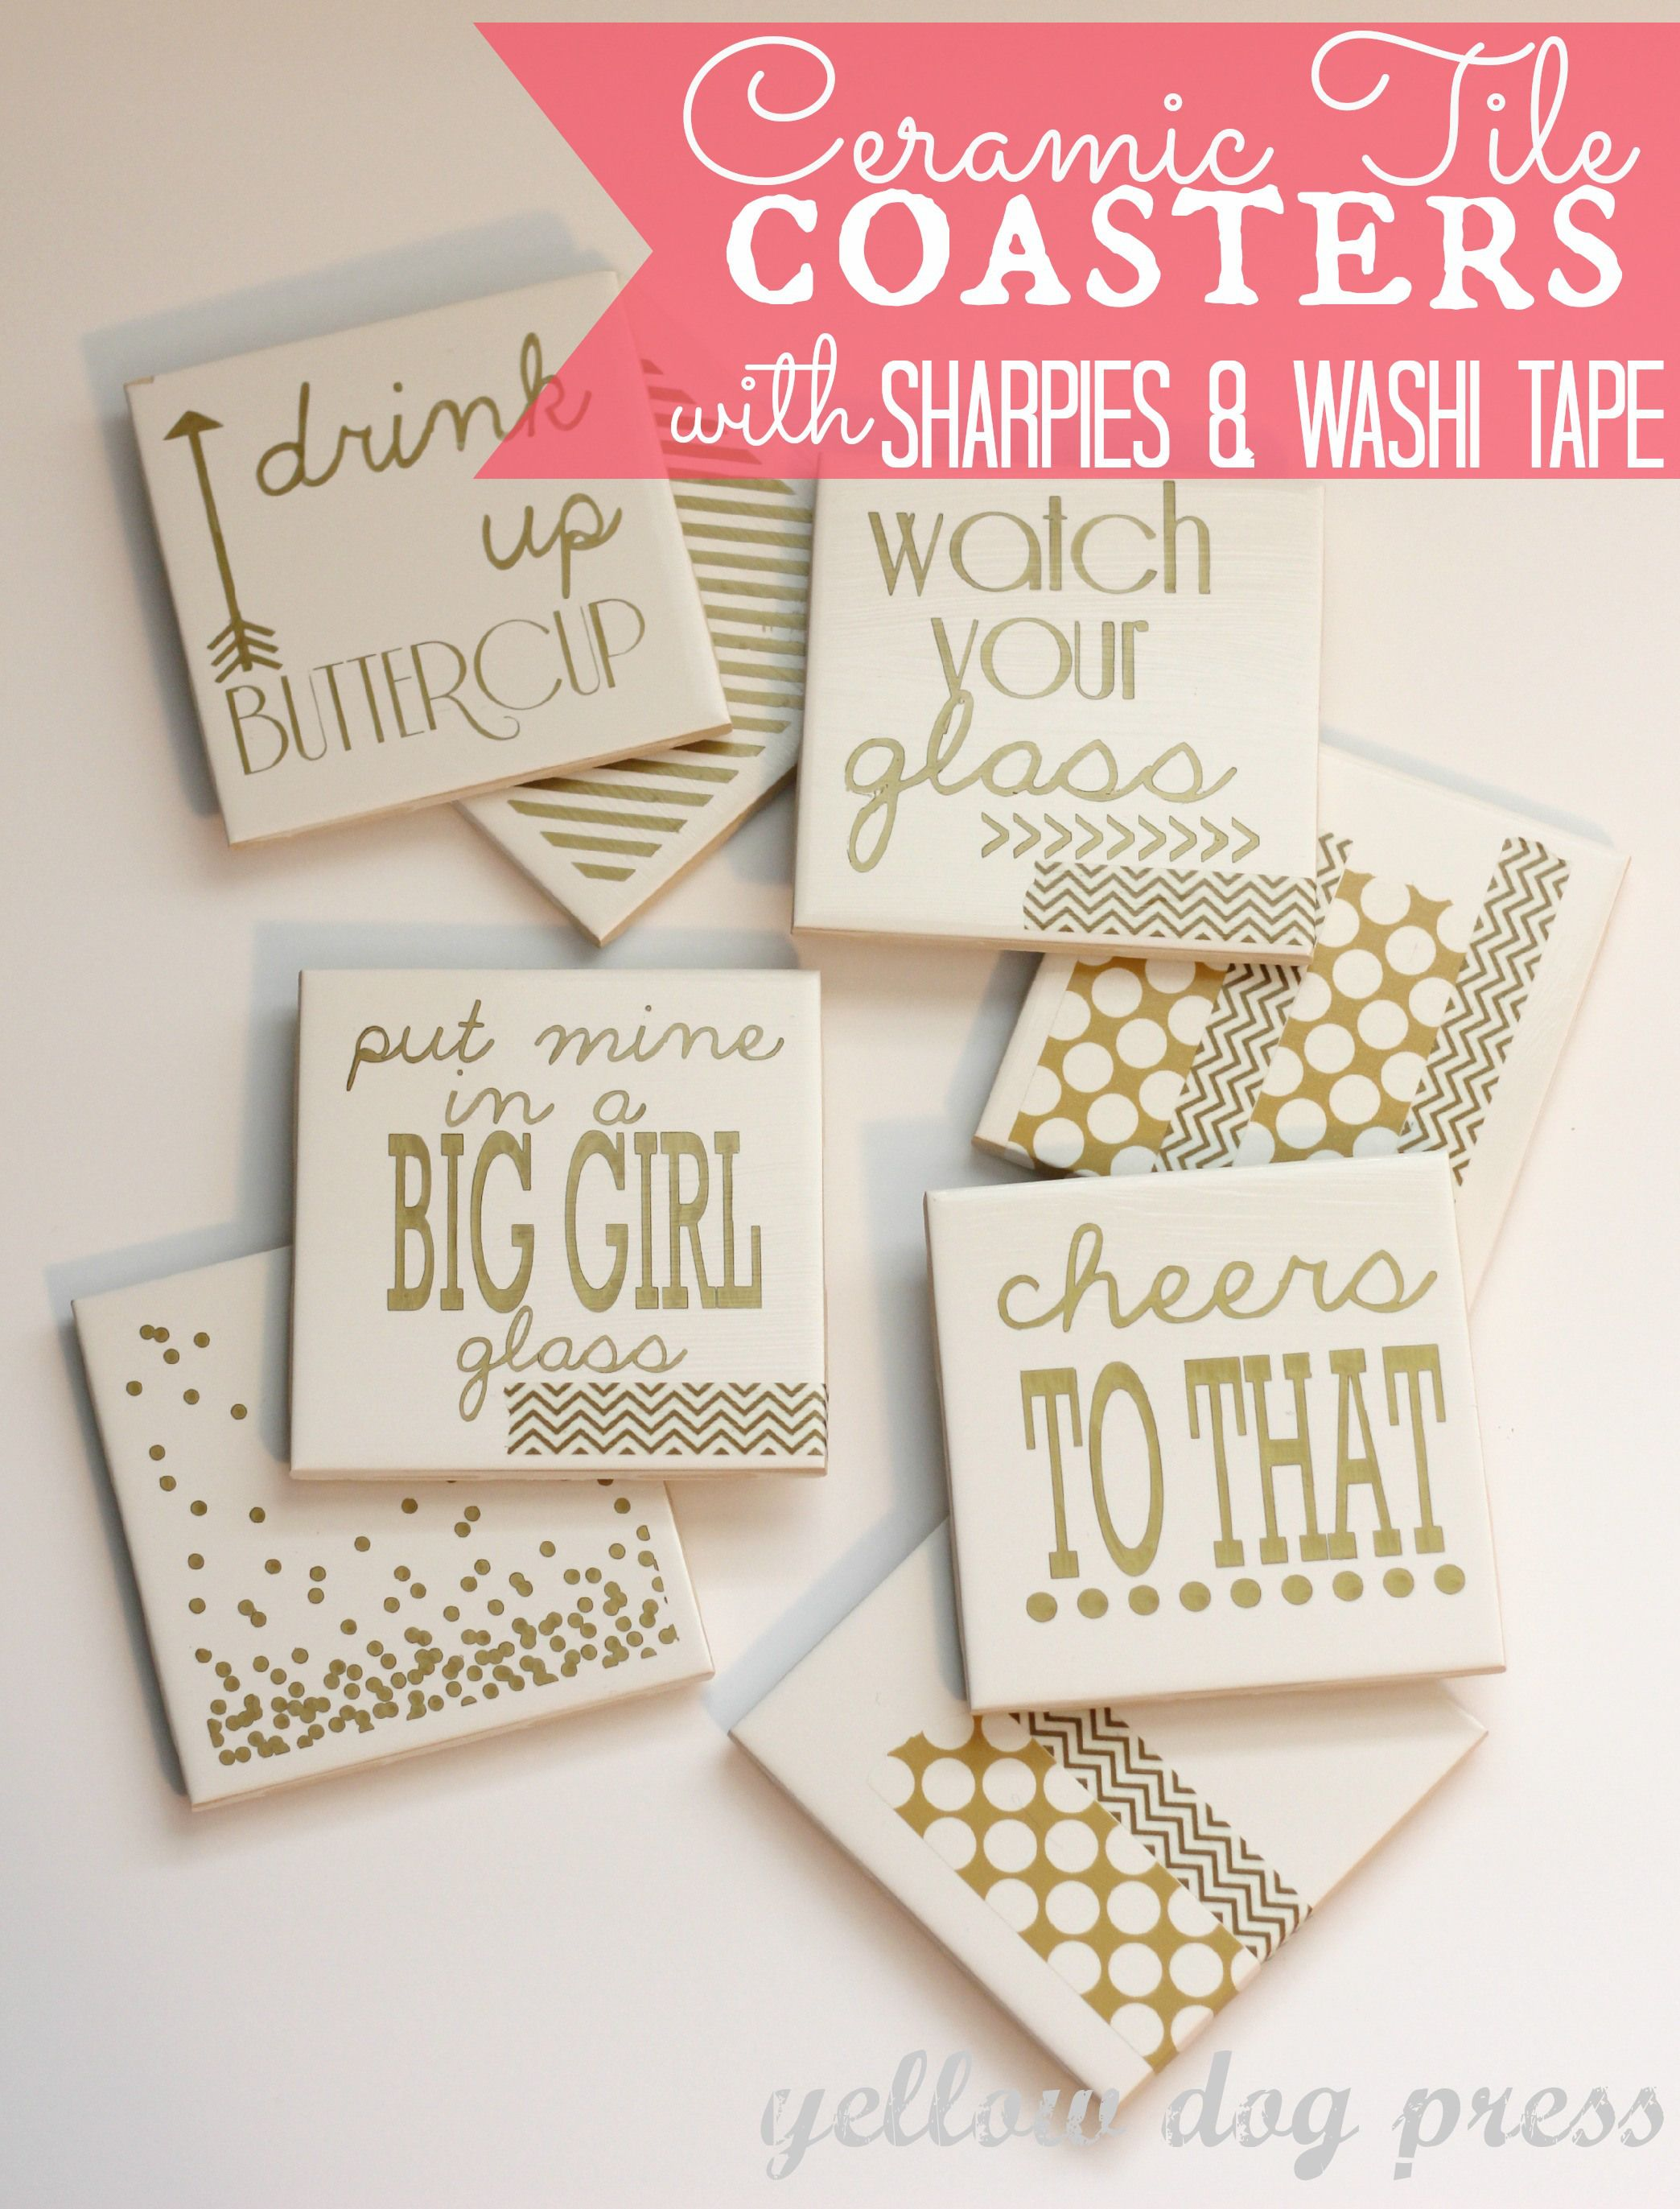 Ceramic Tile Coasters with Sharpies & Washi Tape | Miscellaneous ...